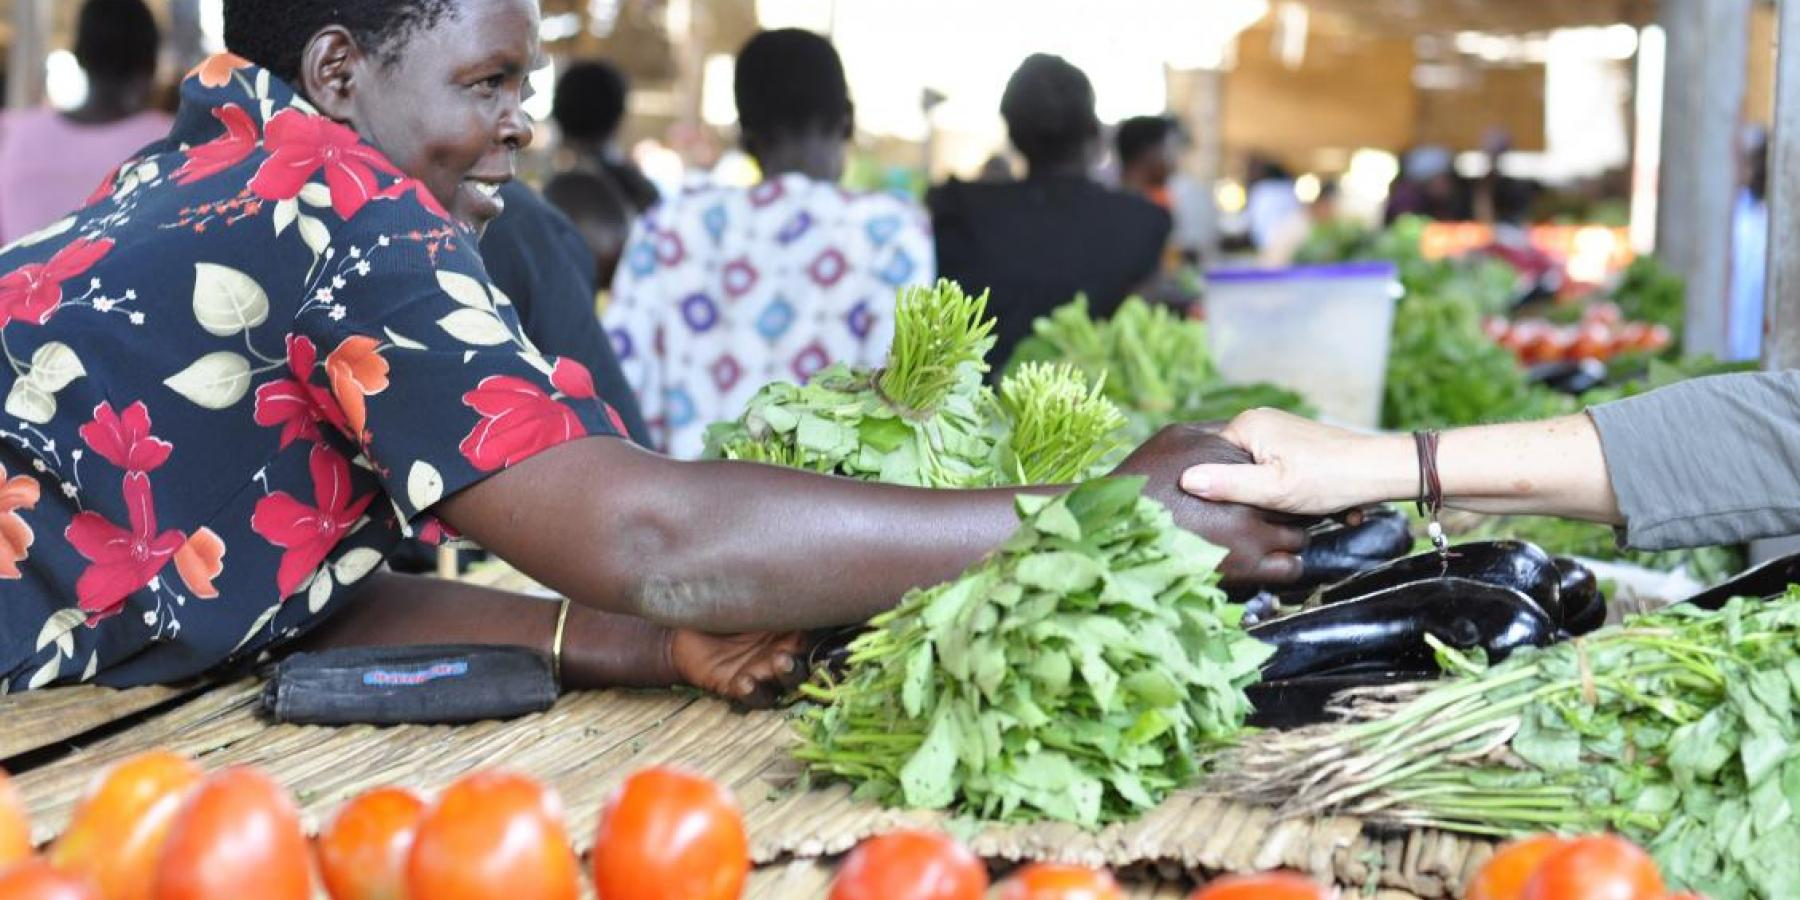 A member of a women's microfinance group sells fruits and vegetables in Gulu, Uganda.